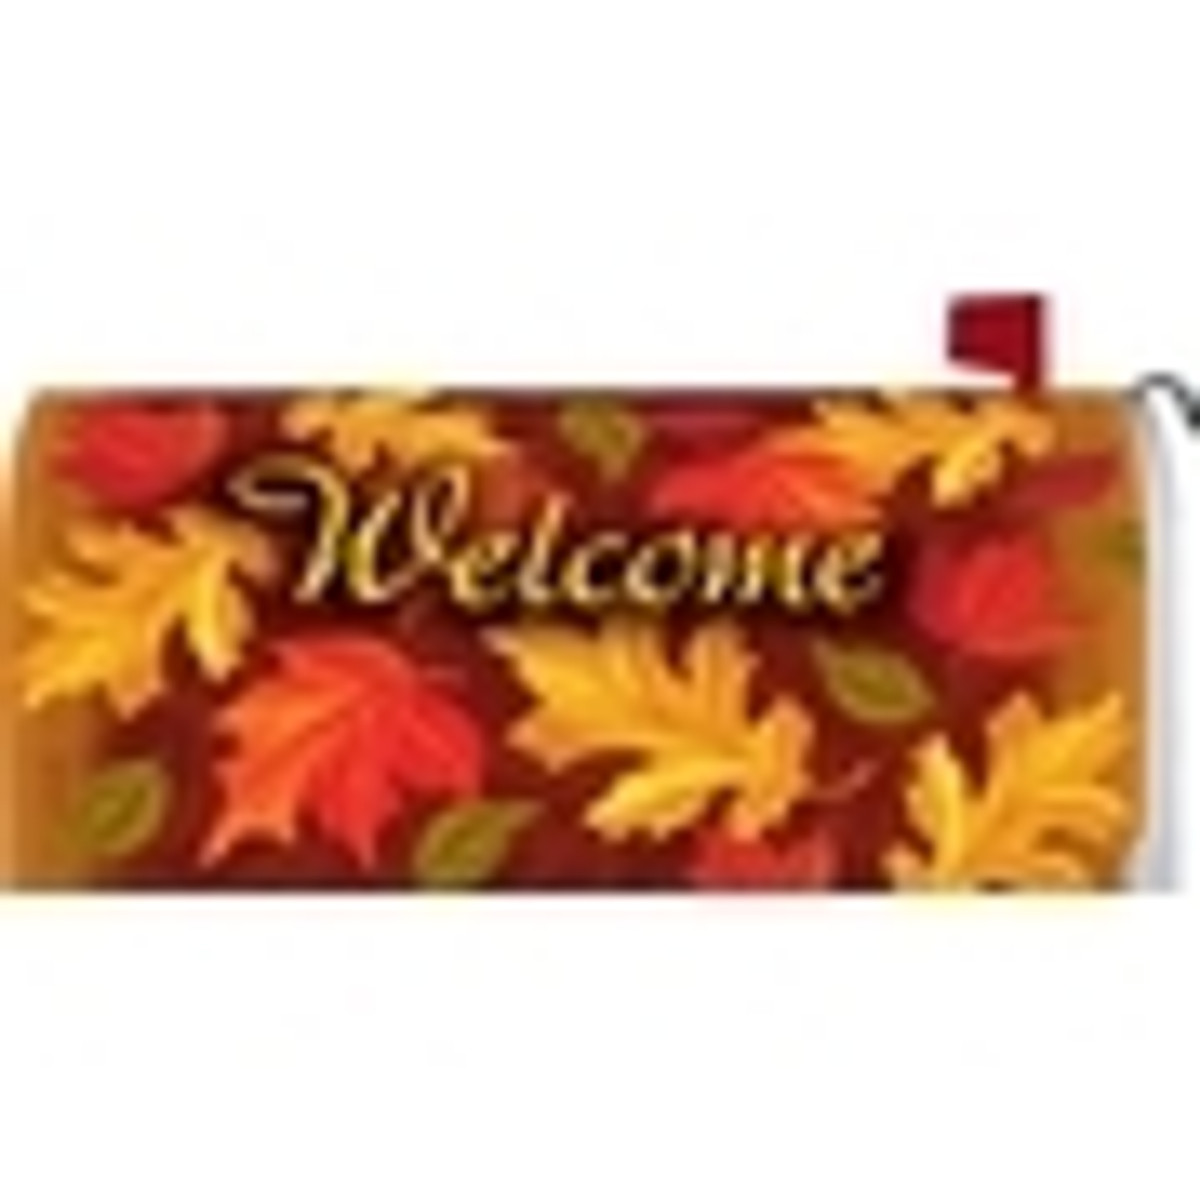 Fall Mailwrap Mailbox Covers